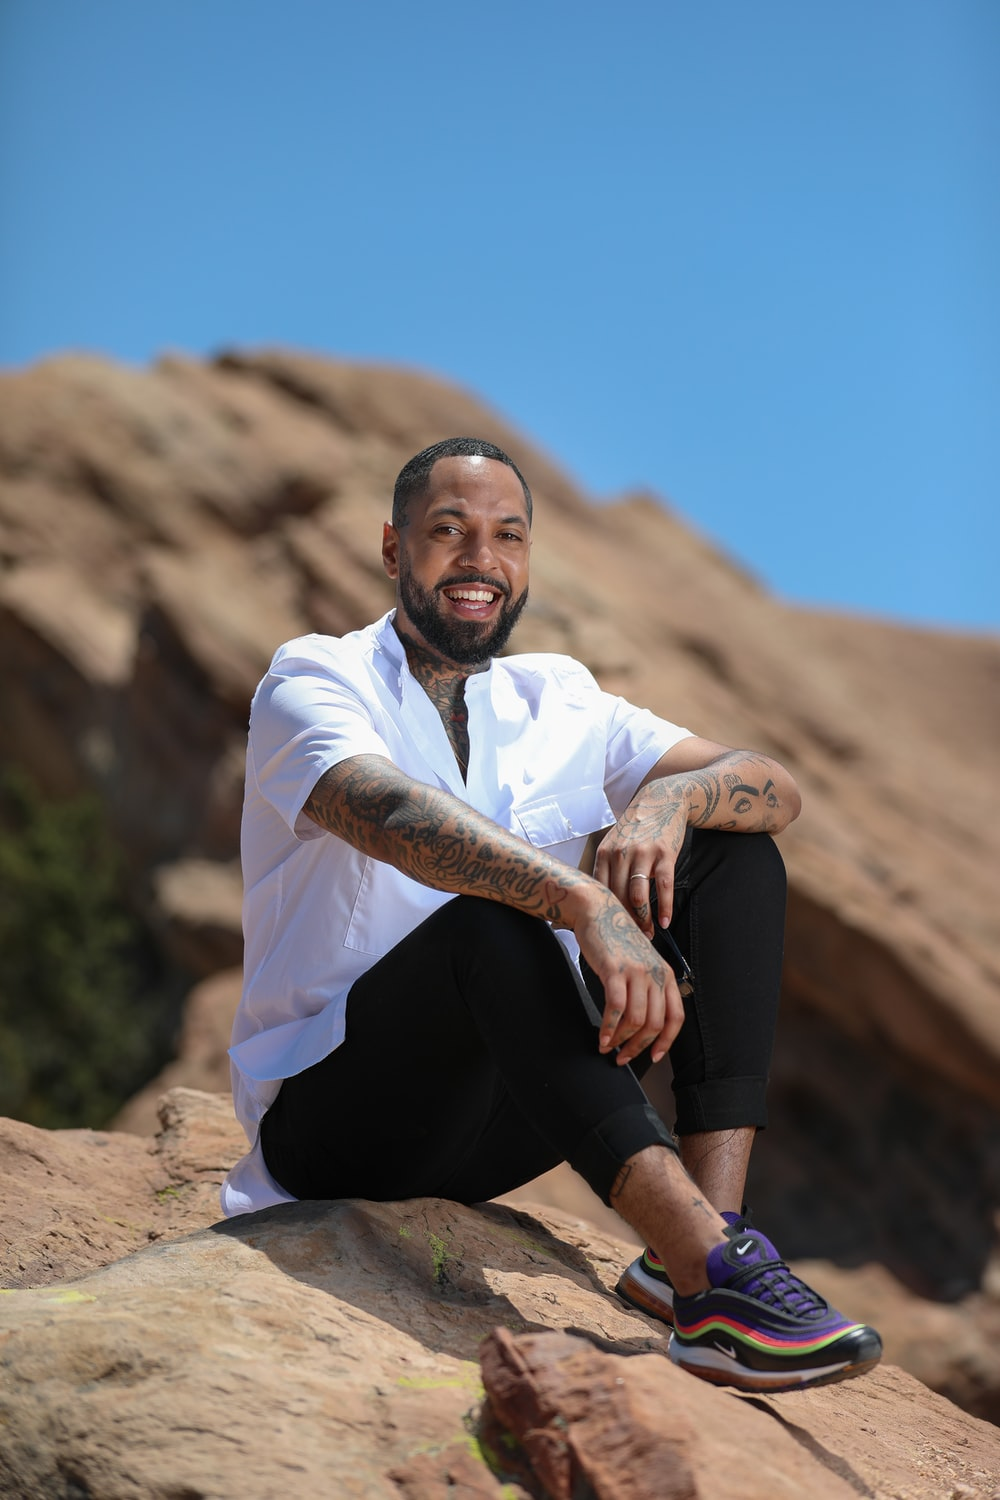 man in white button up shirt and black shorts sitting on brown rock during daytime